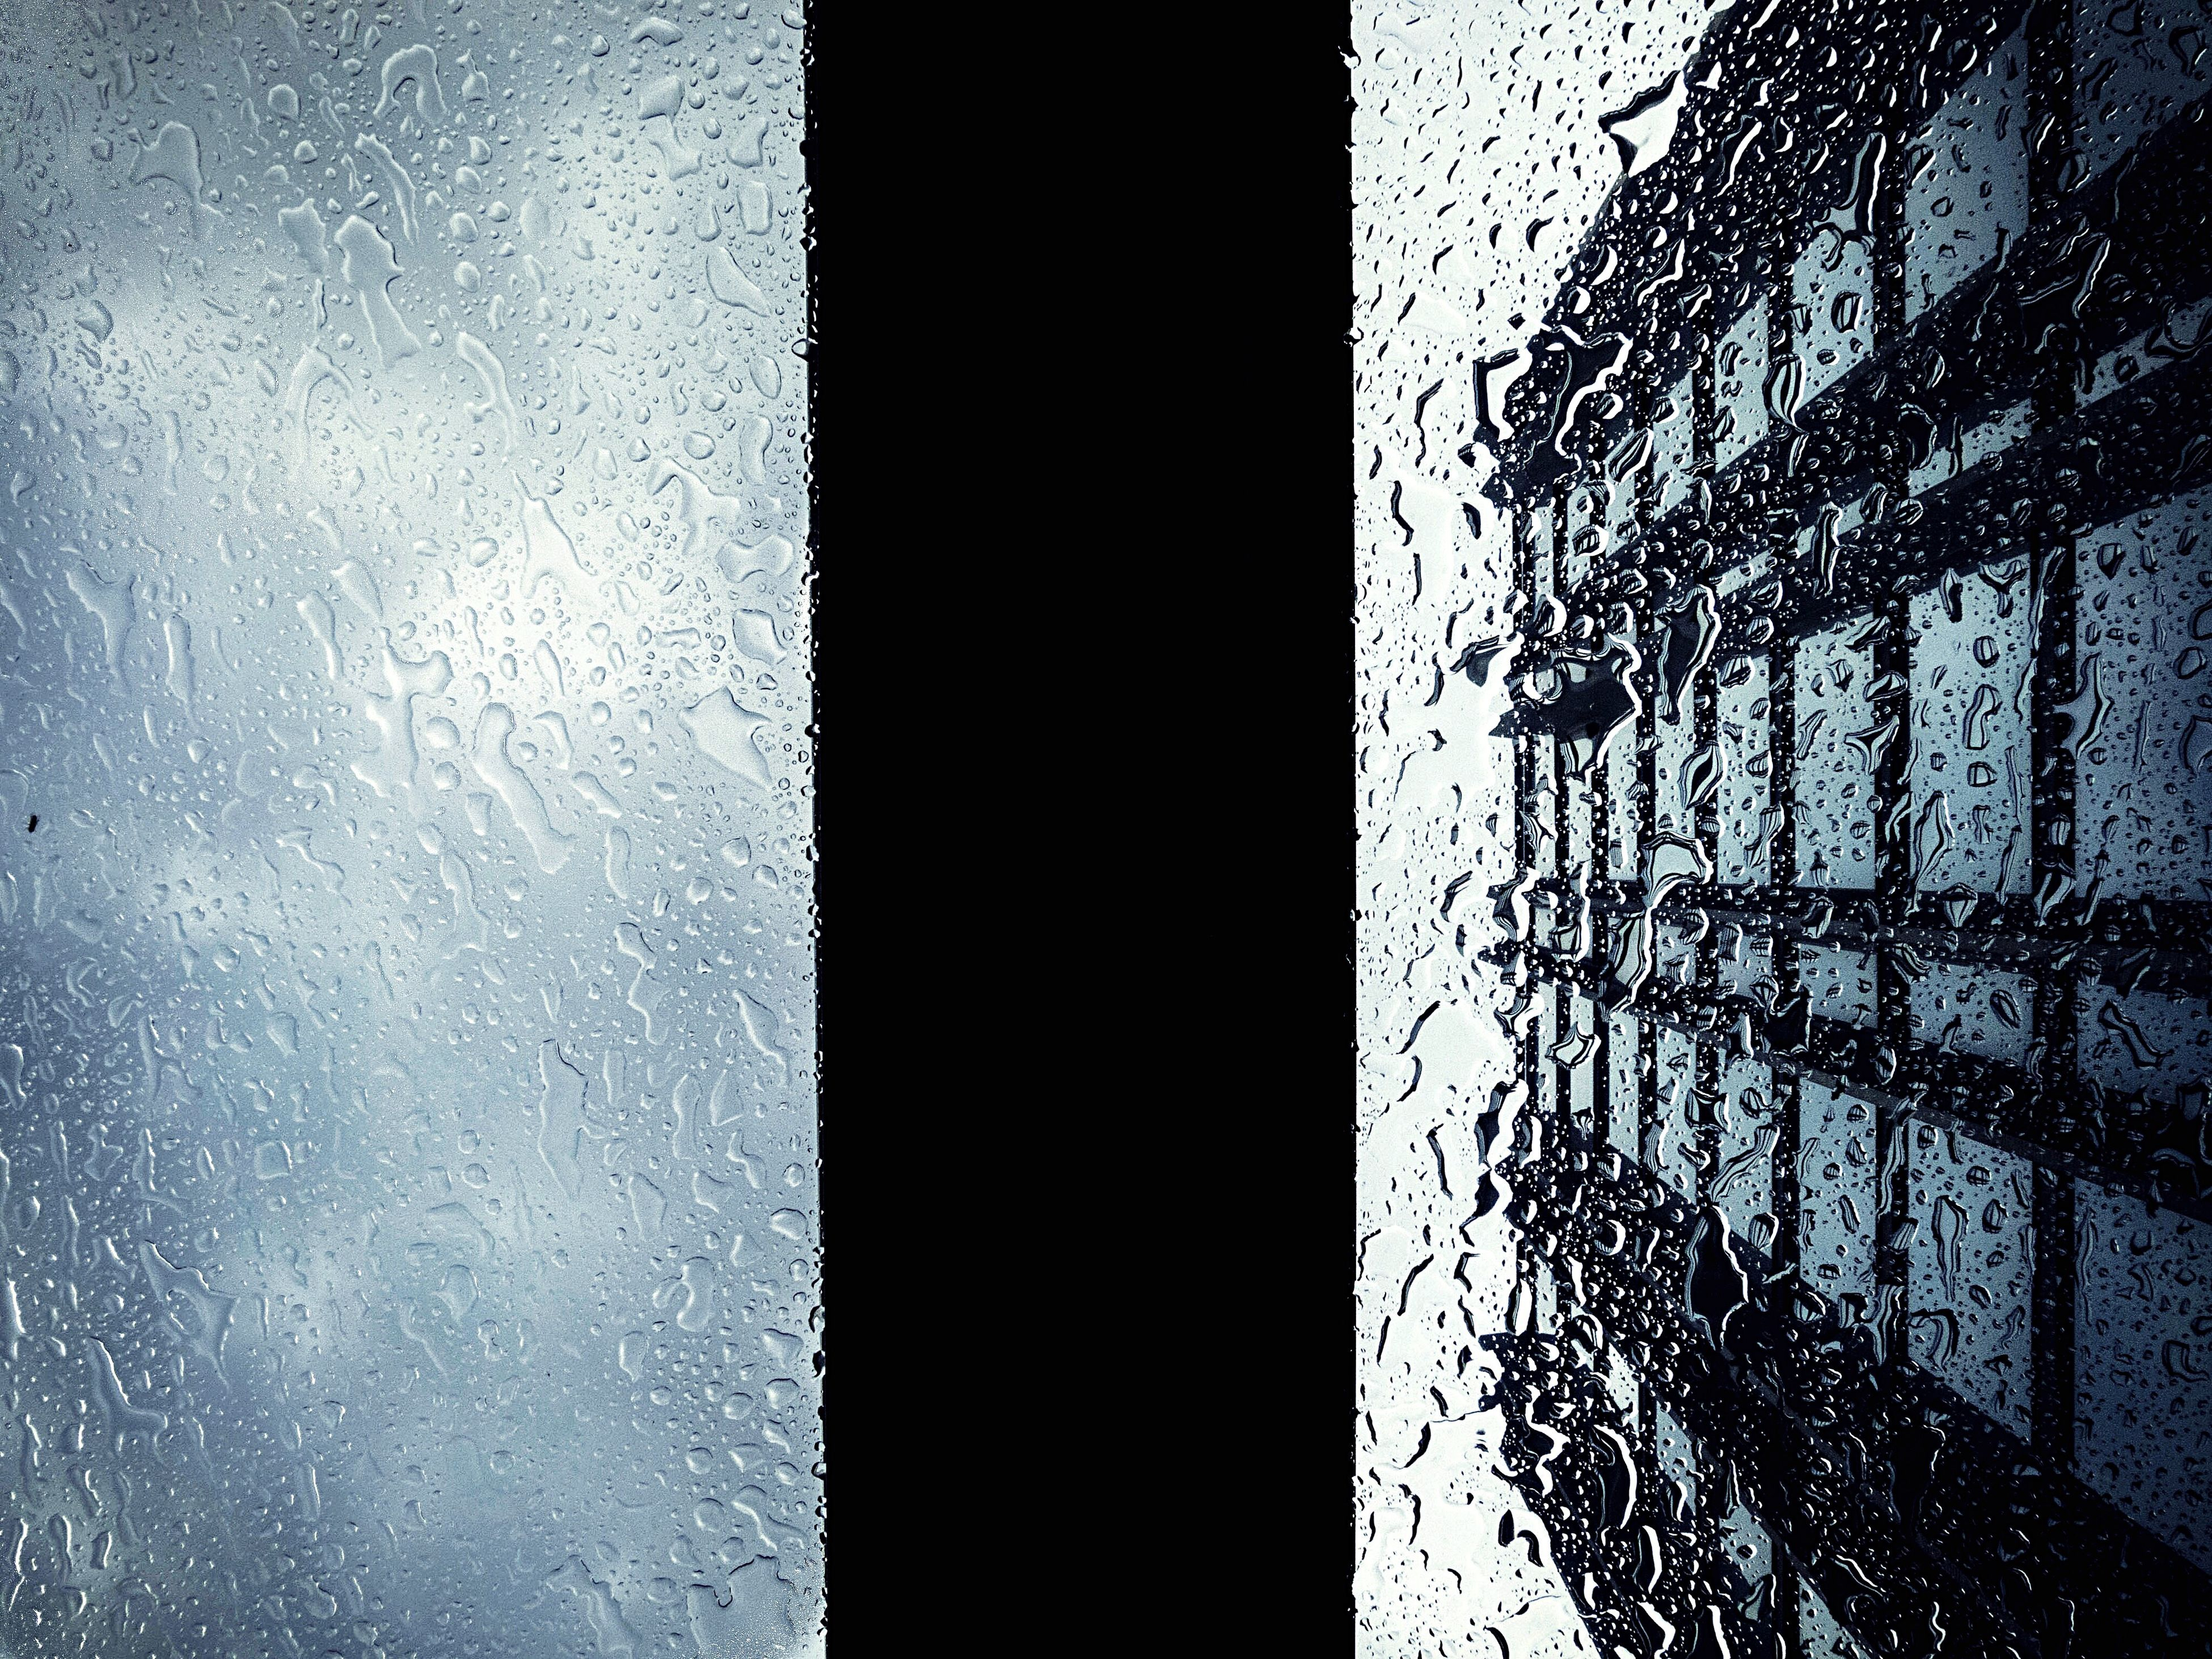 full frame, backgrounds, pattern, window, textured, indoors, no people, frosted glass, close-up, water, sky, day